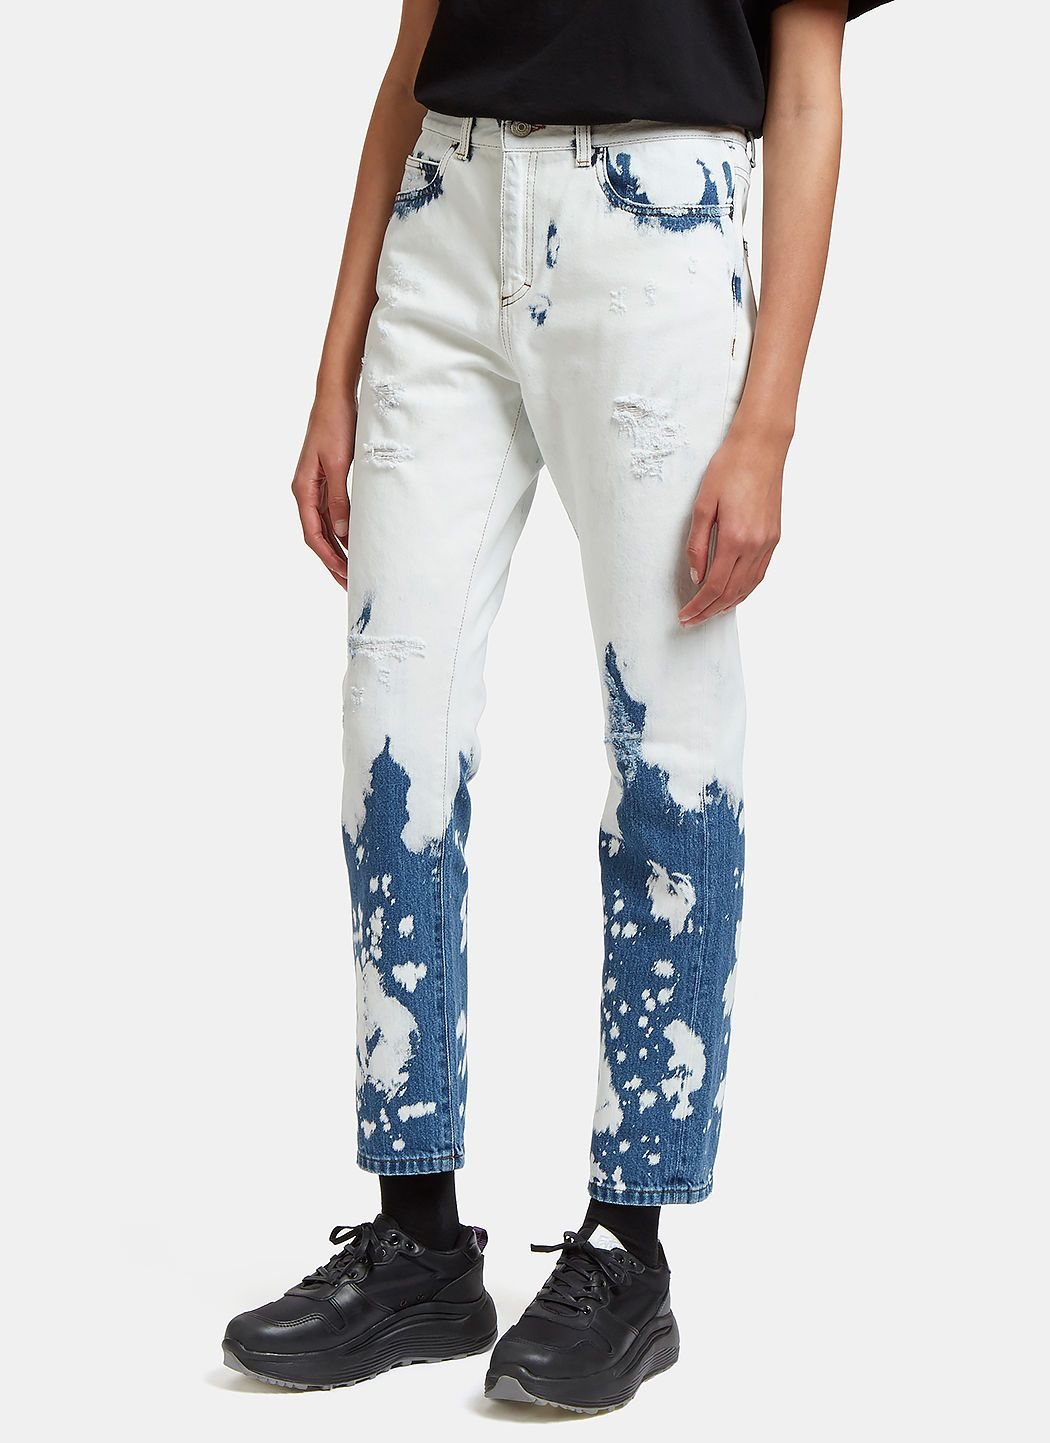 Gucci Bleached Mid Rise Boyfriend Jeans In White Modesens Bleach Jeans Diy Clothes Bleaching Clothes